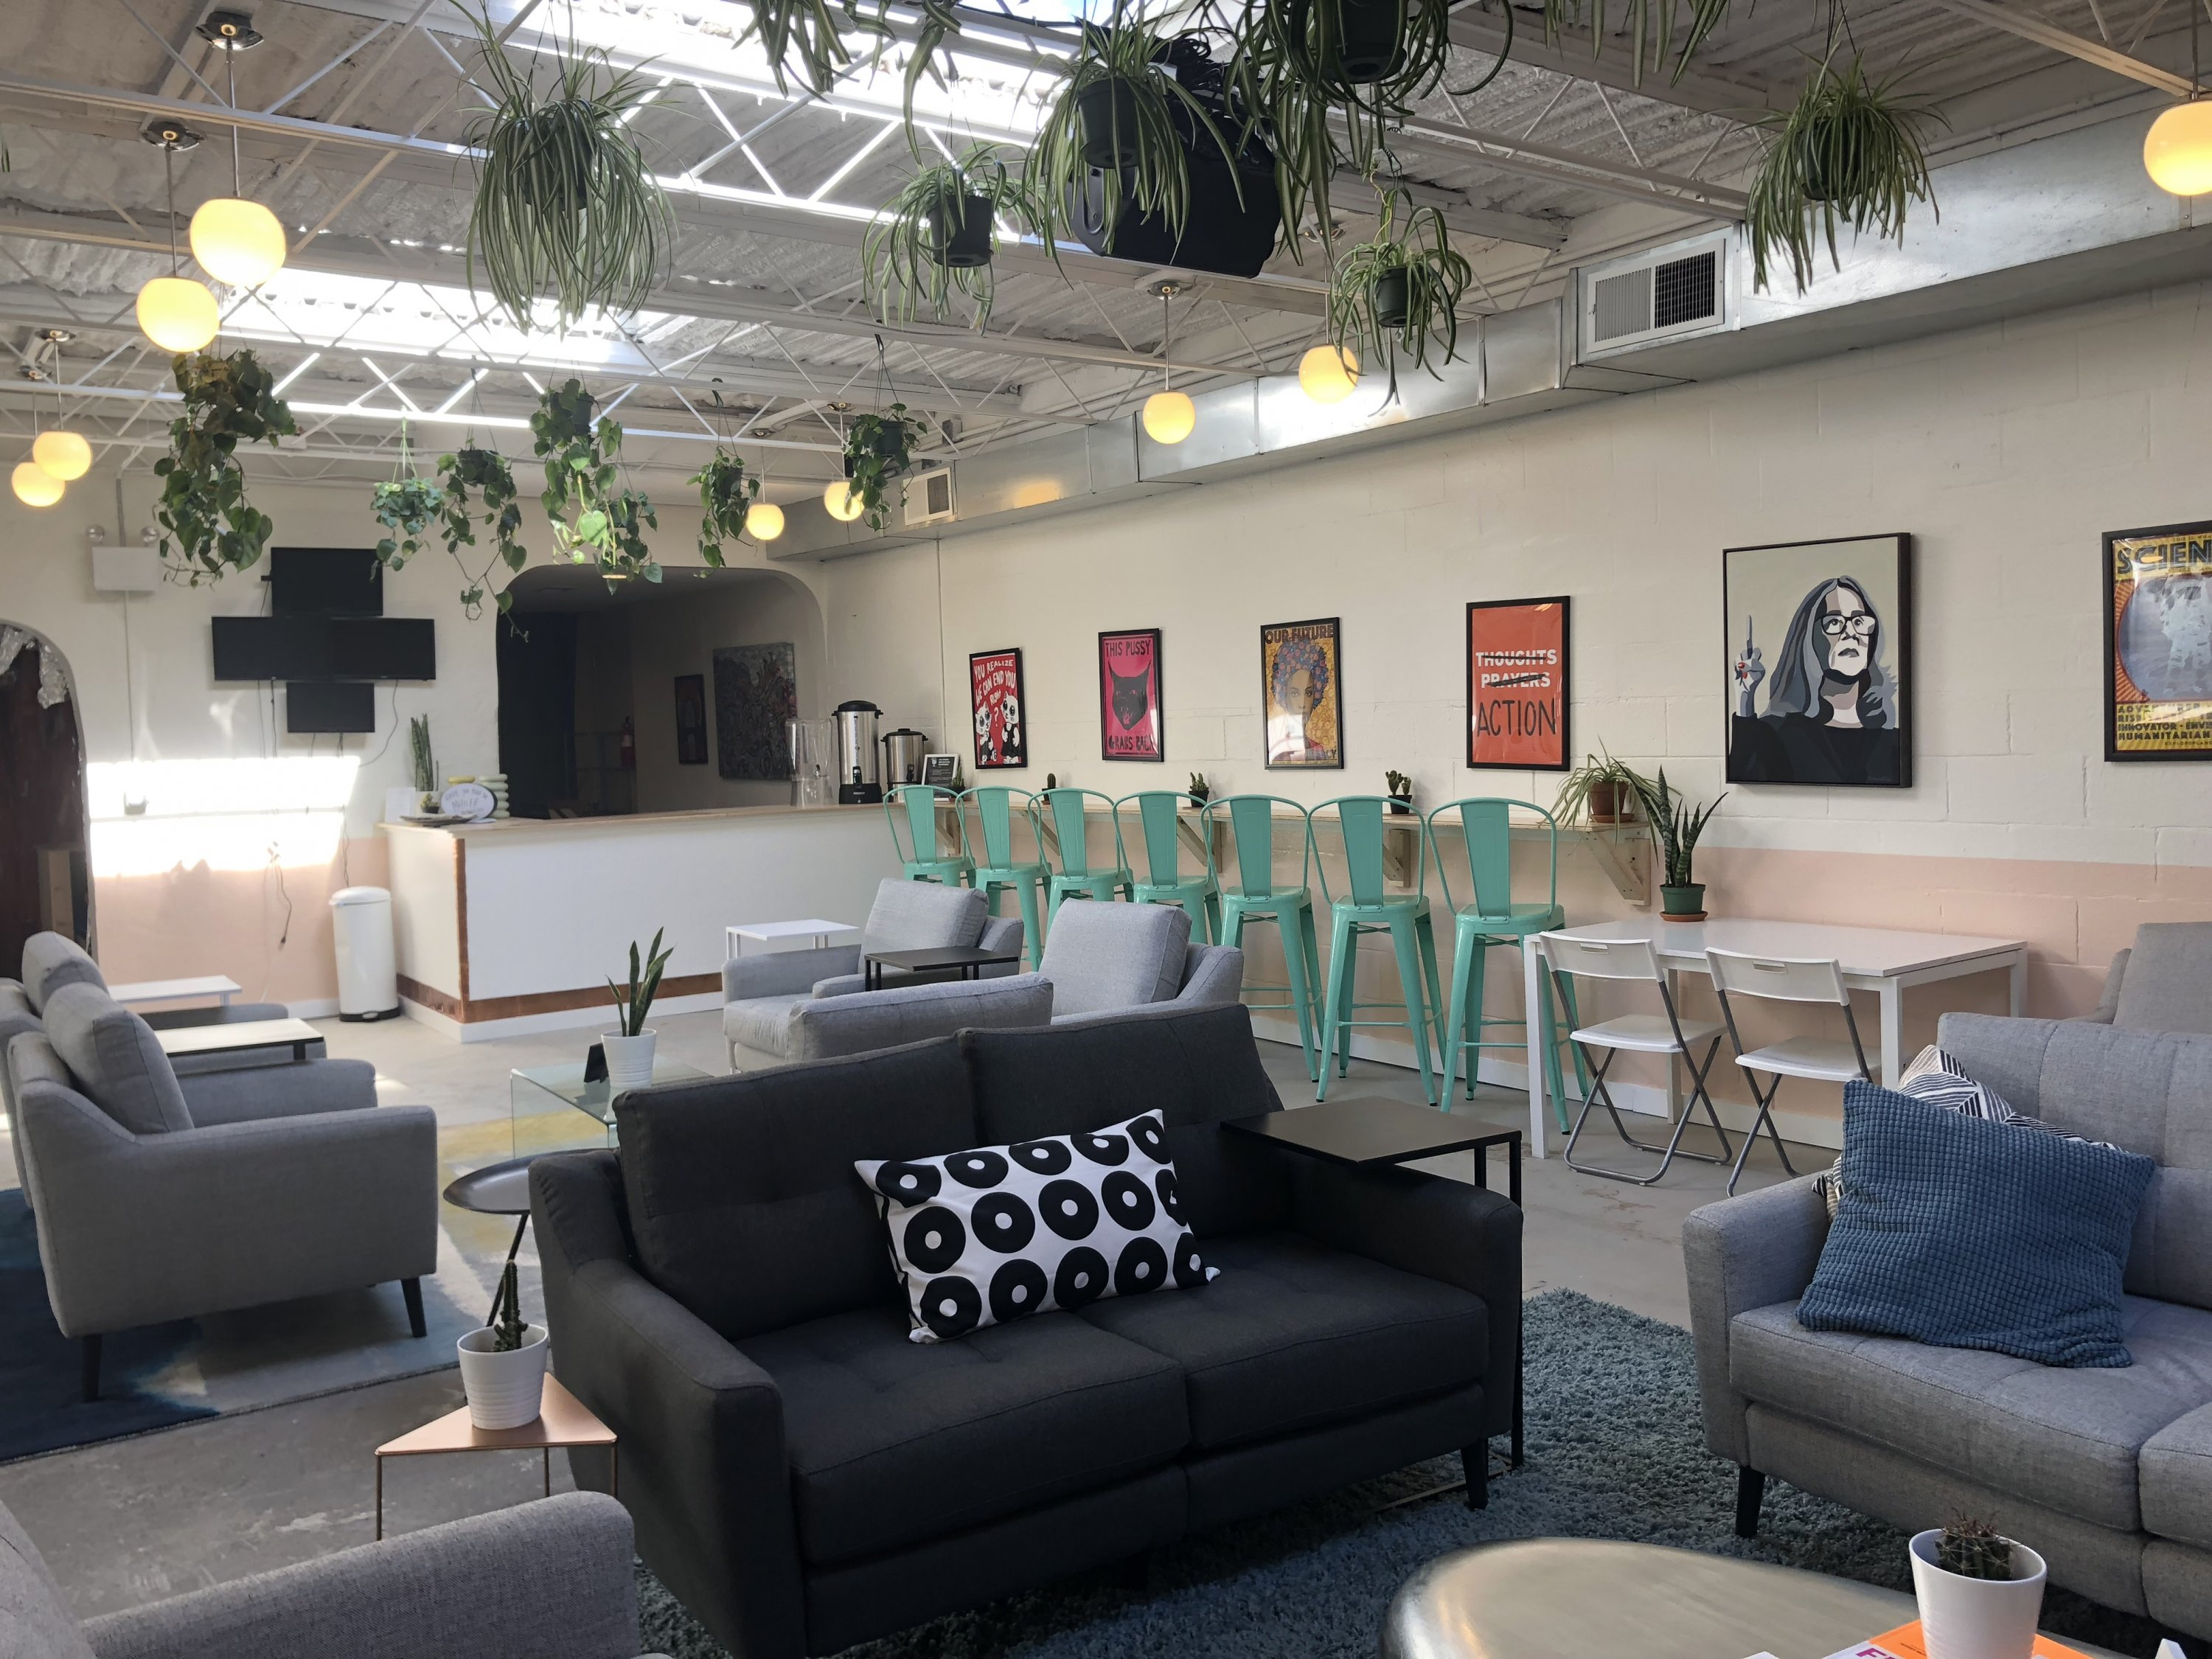 """It's very much an oasis as you can see from the plants and the calming colors,"" Howell says. ""A great space to kind of unwind and be around like-minded individuals."""